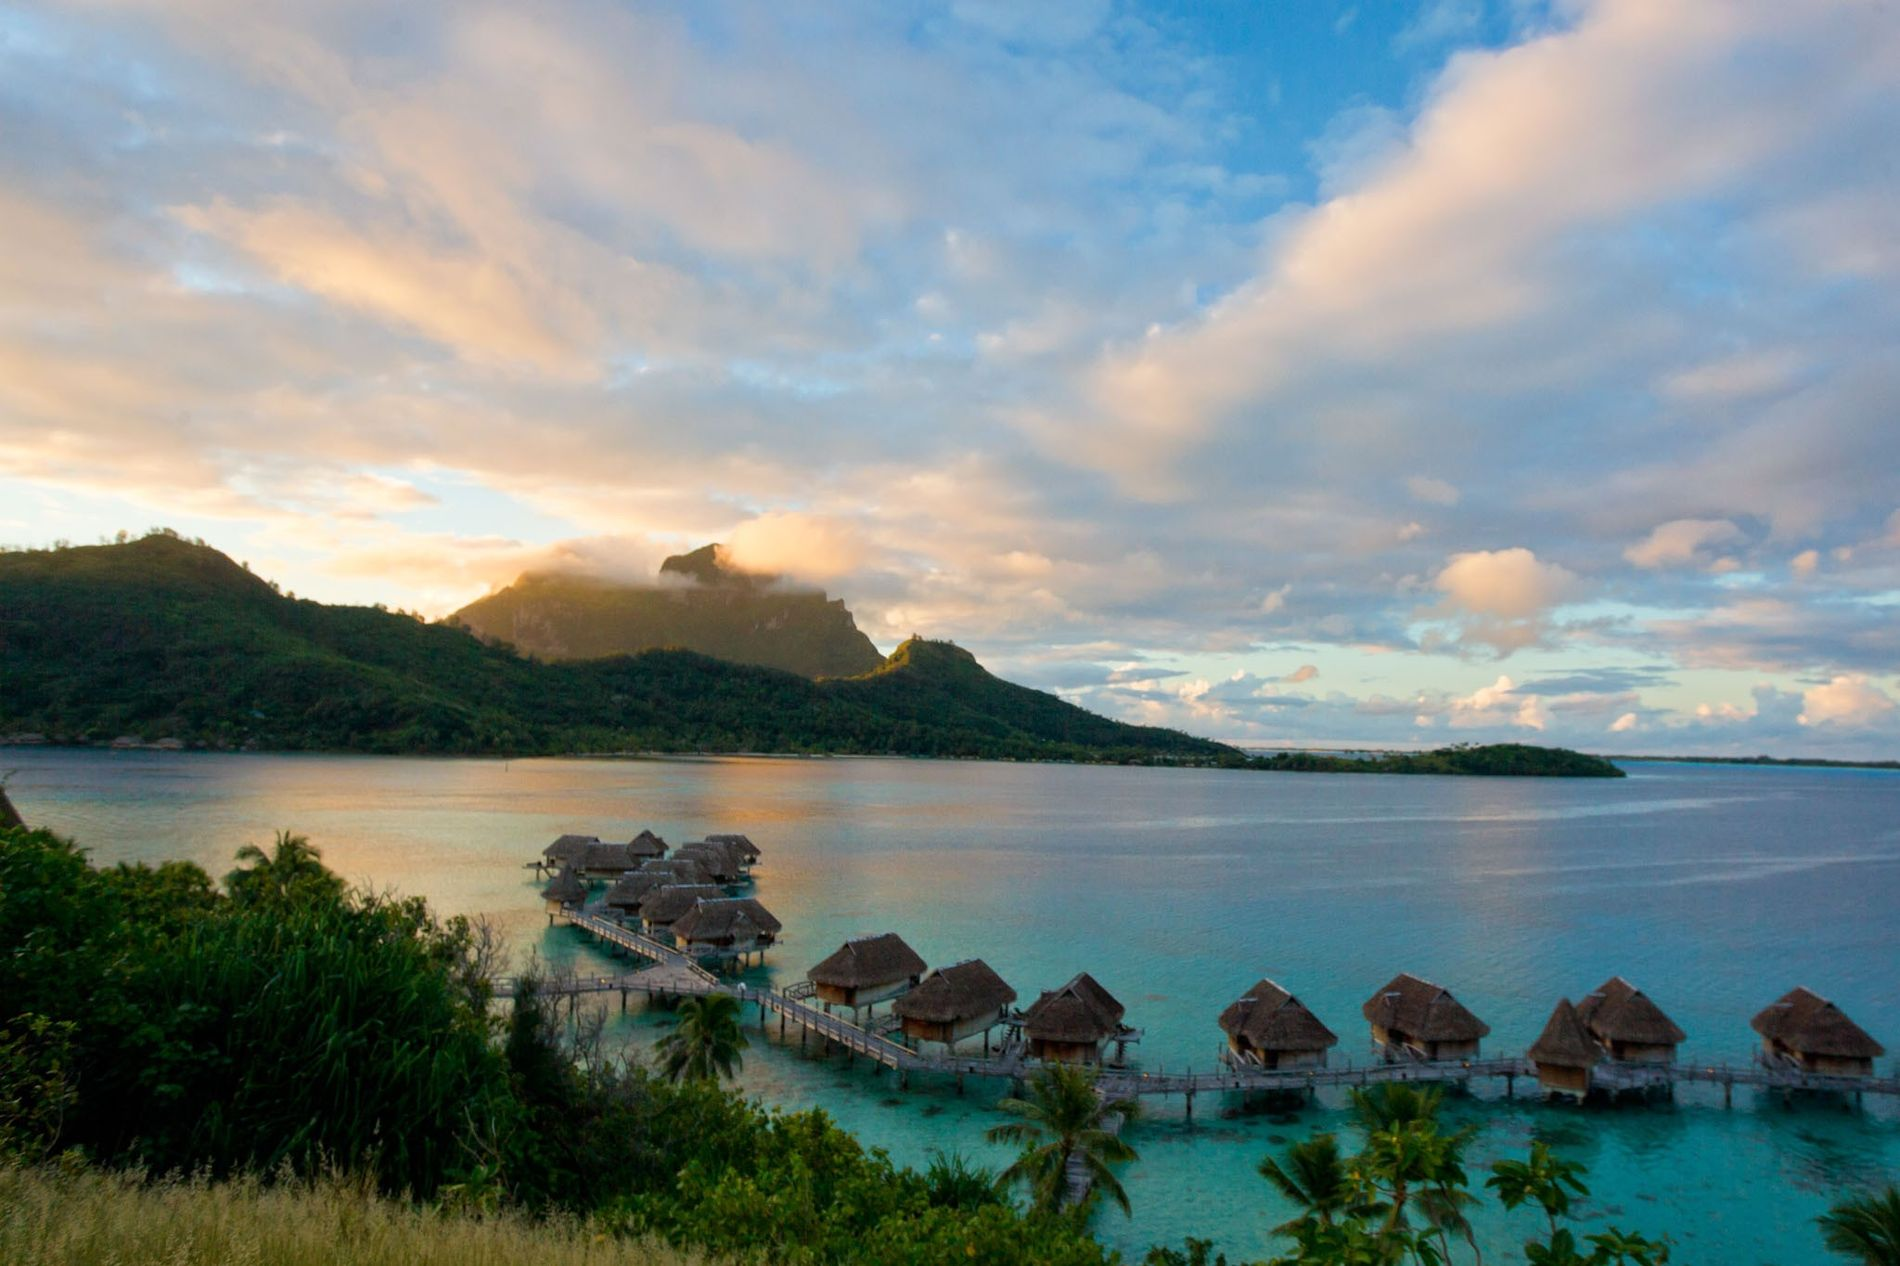 Like visitors today, the sailors on the HMS Bounty found Tahiti to be a paradise. But the arrival of Europeans was devastating to Tahitian culture.